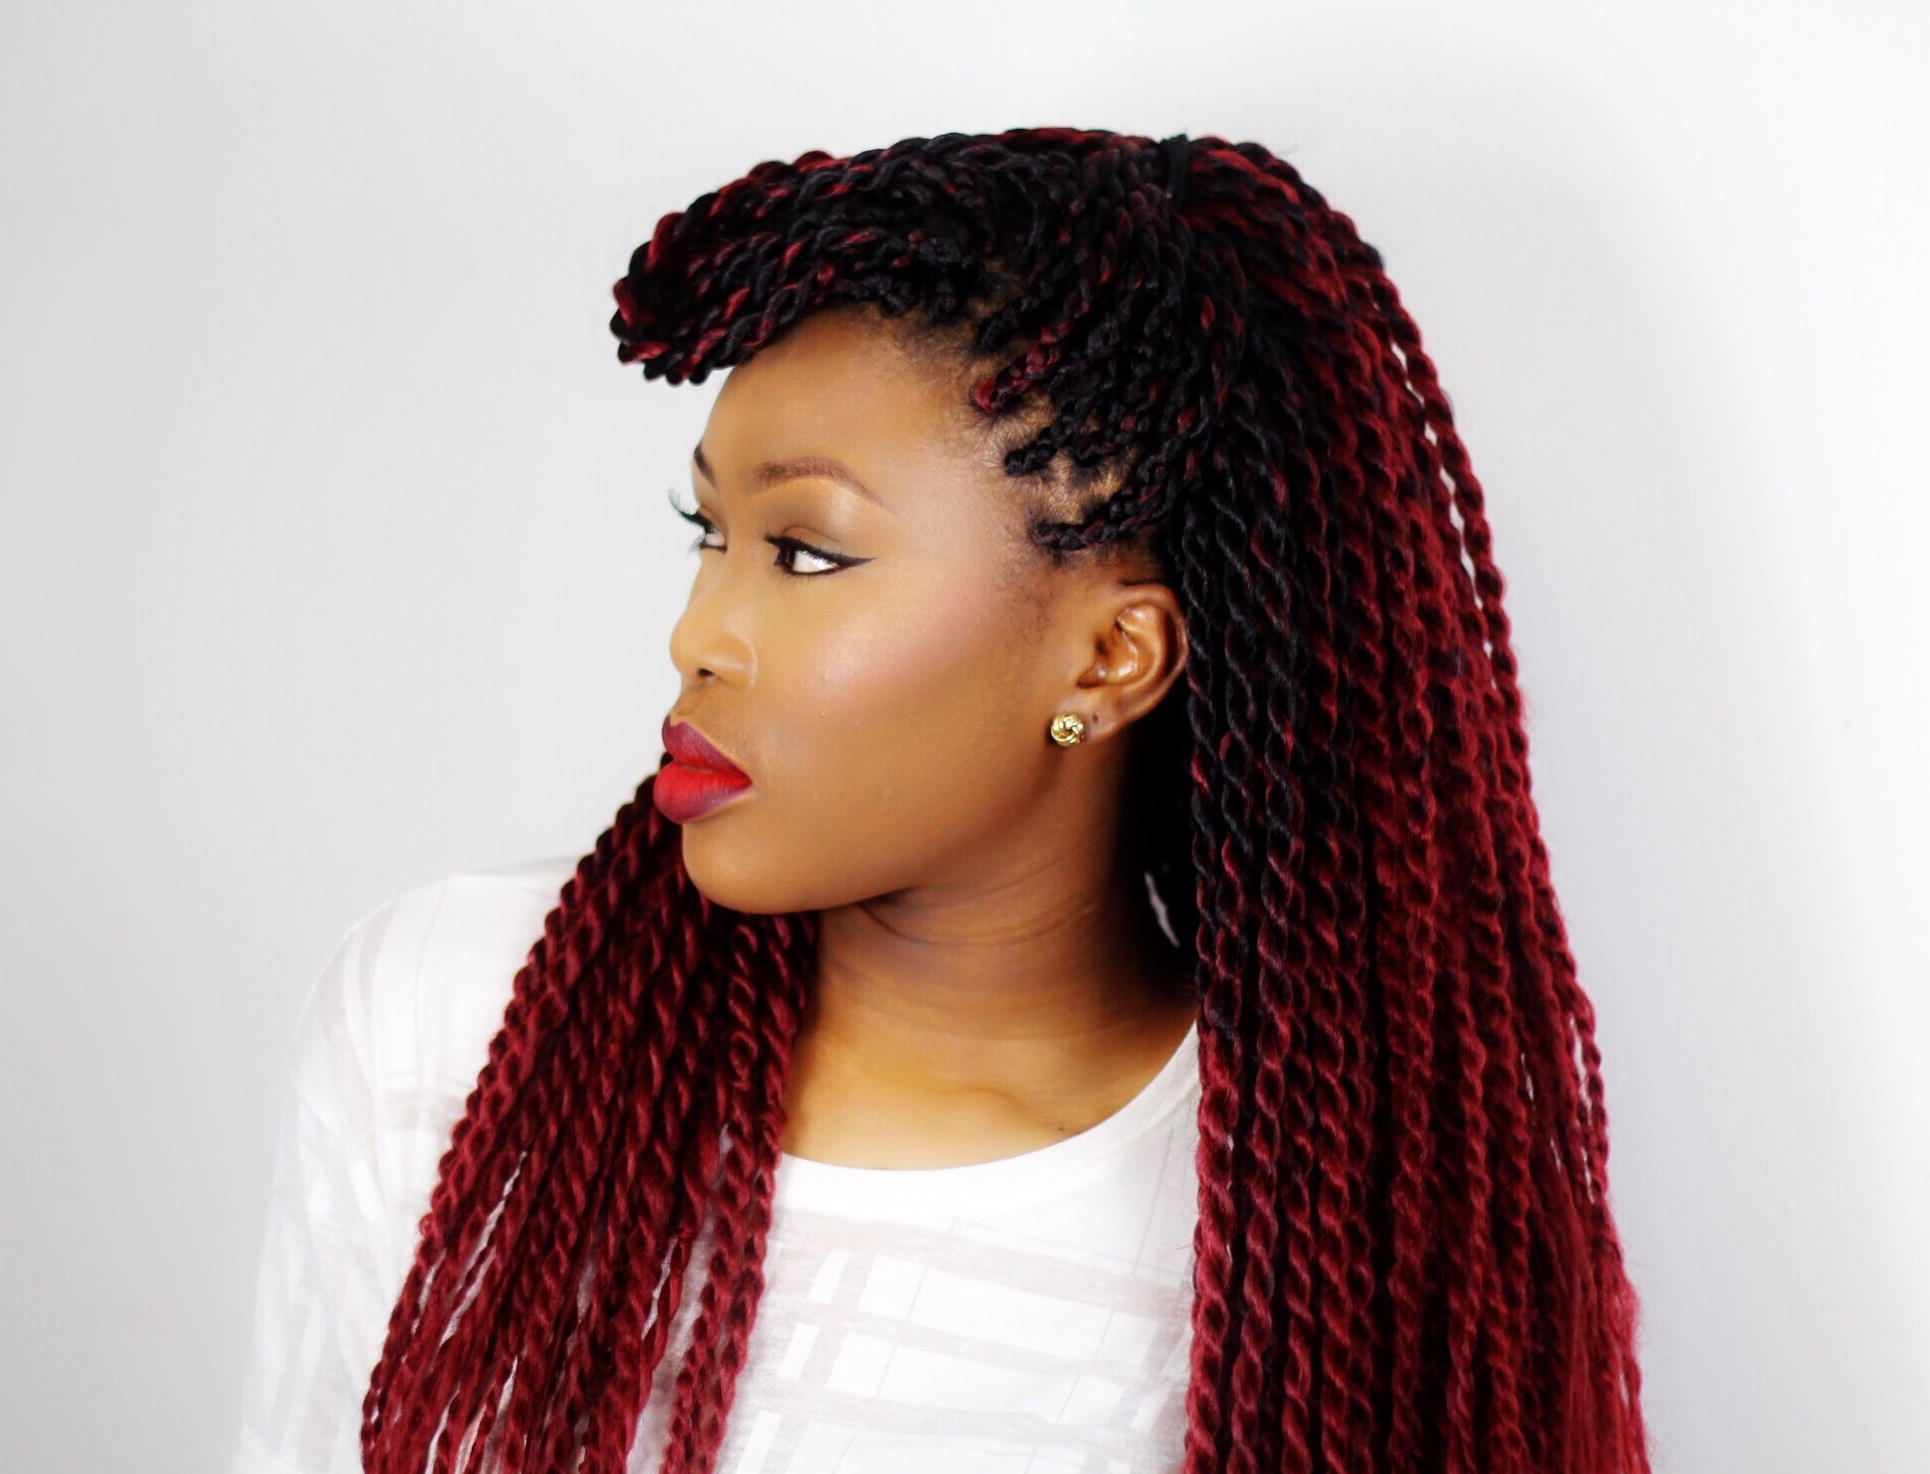 Black Hair Twist Styles Pictures: 30 Protective High Shine Senegalese Twist Styles